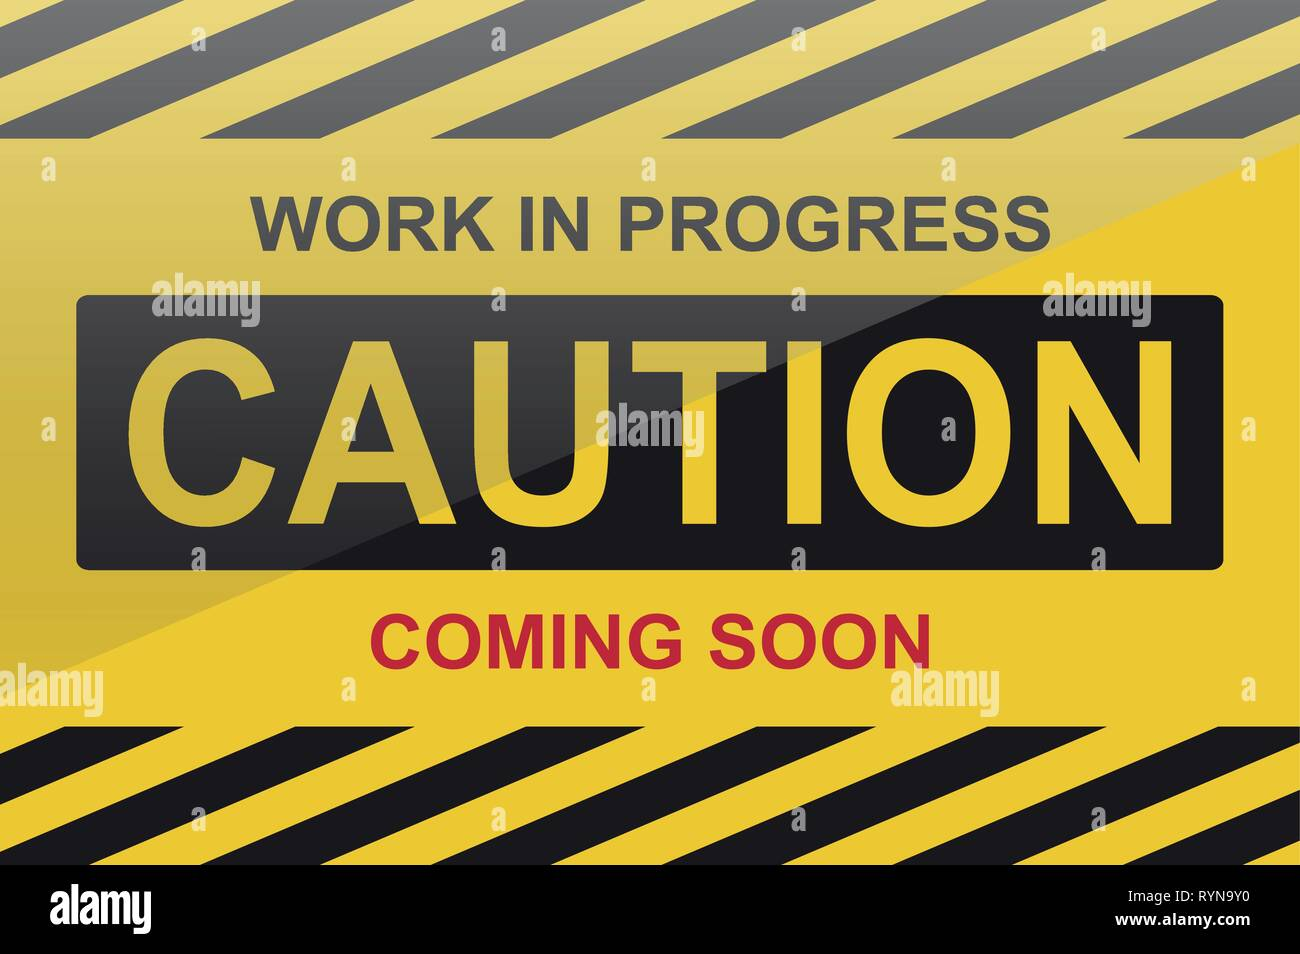 Caution, work in progress sign, with text coming soon - Stock Vector